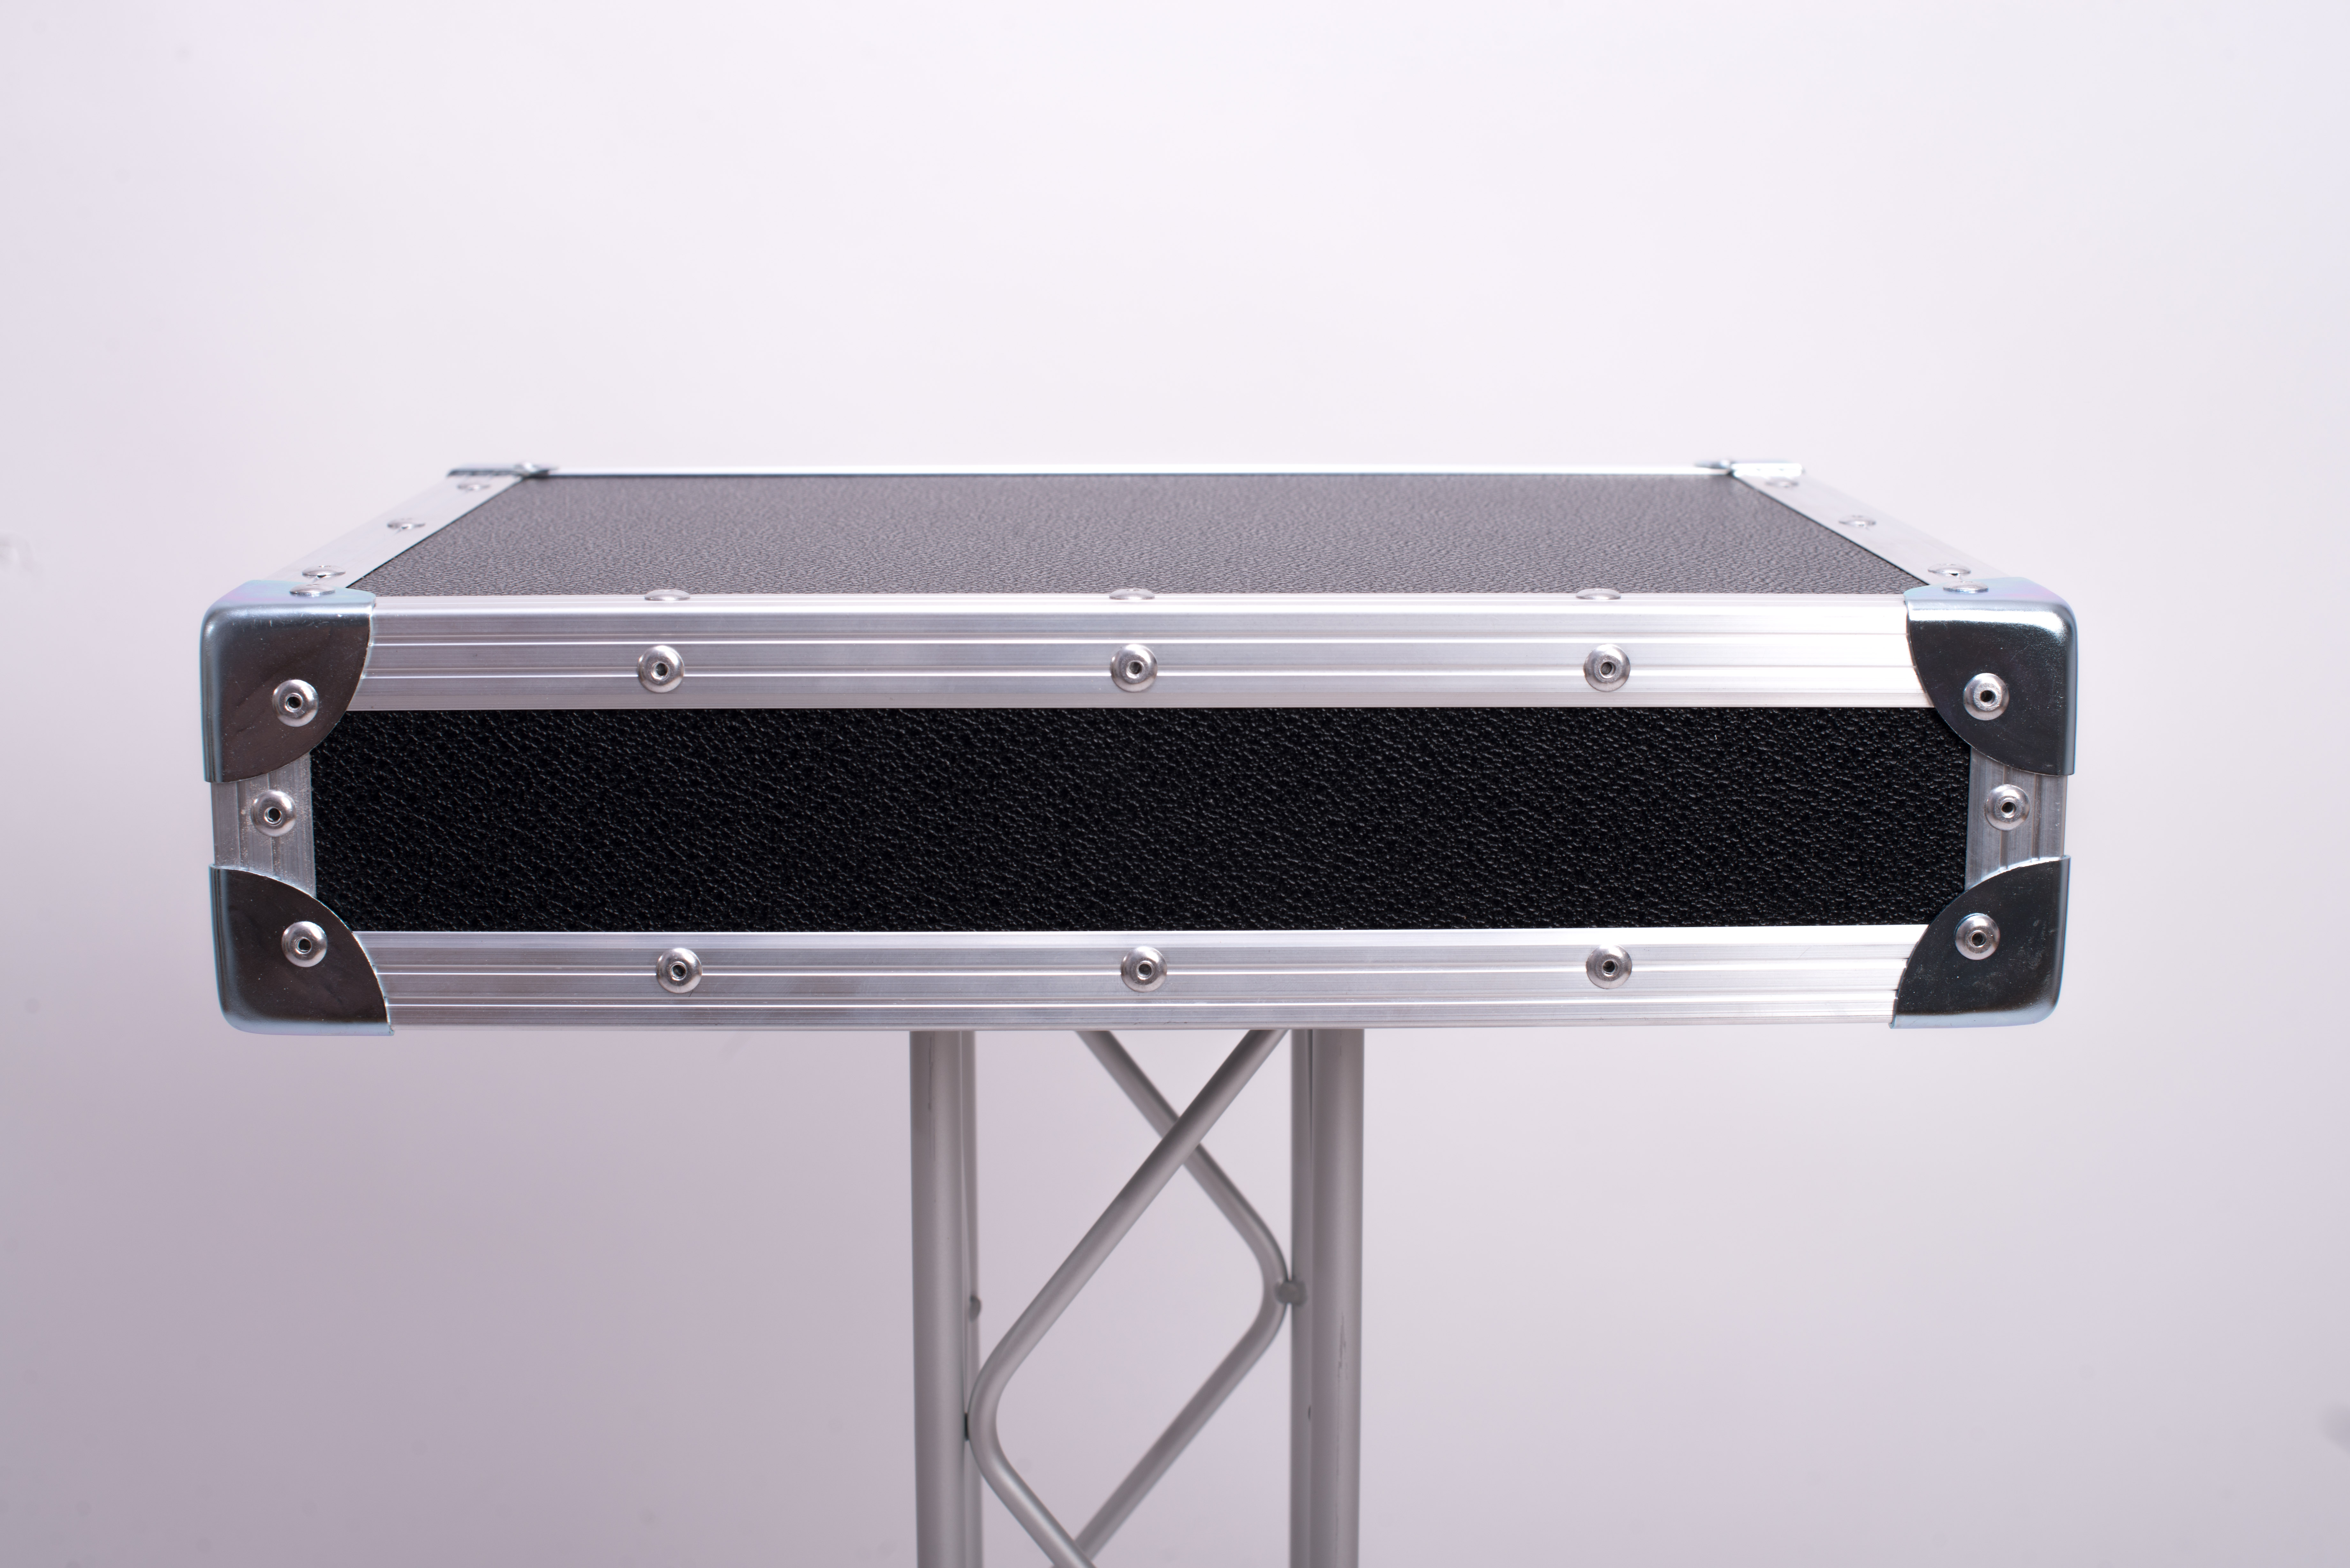 Stage table stand up flightcase illusions for Tisch design for stage and film